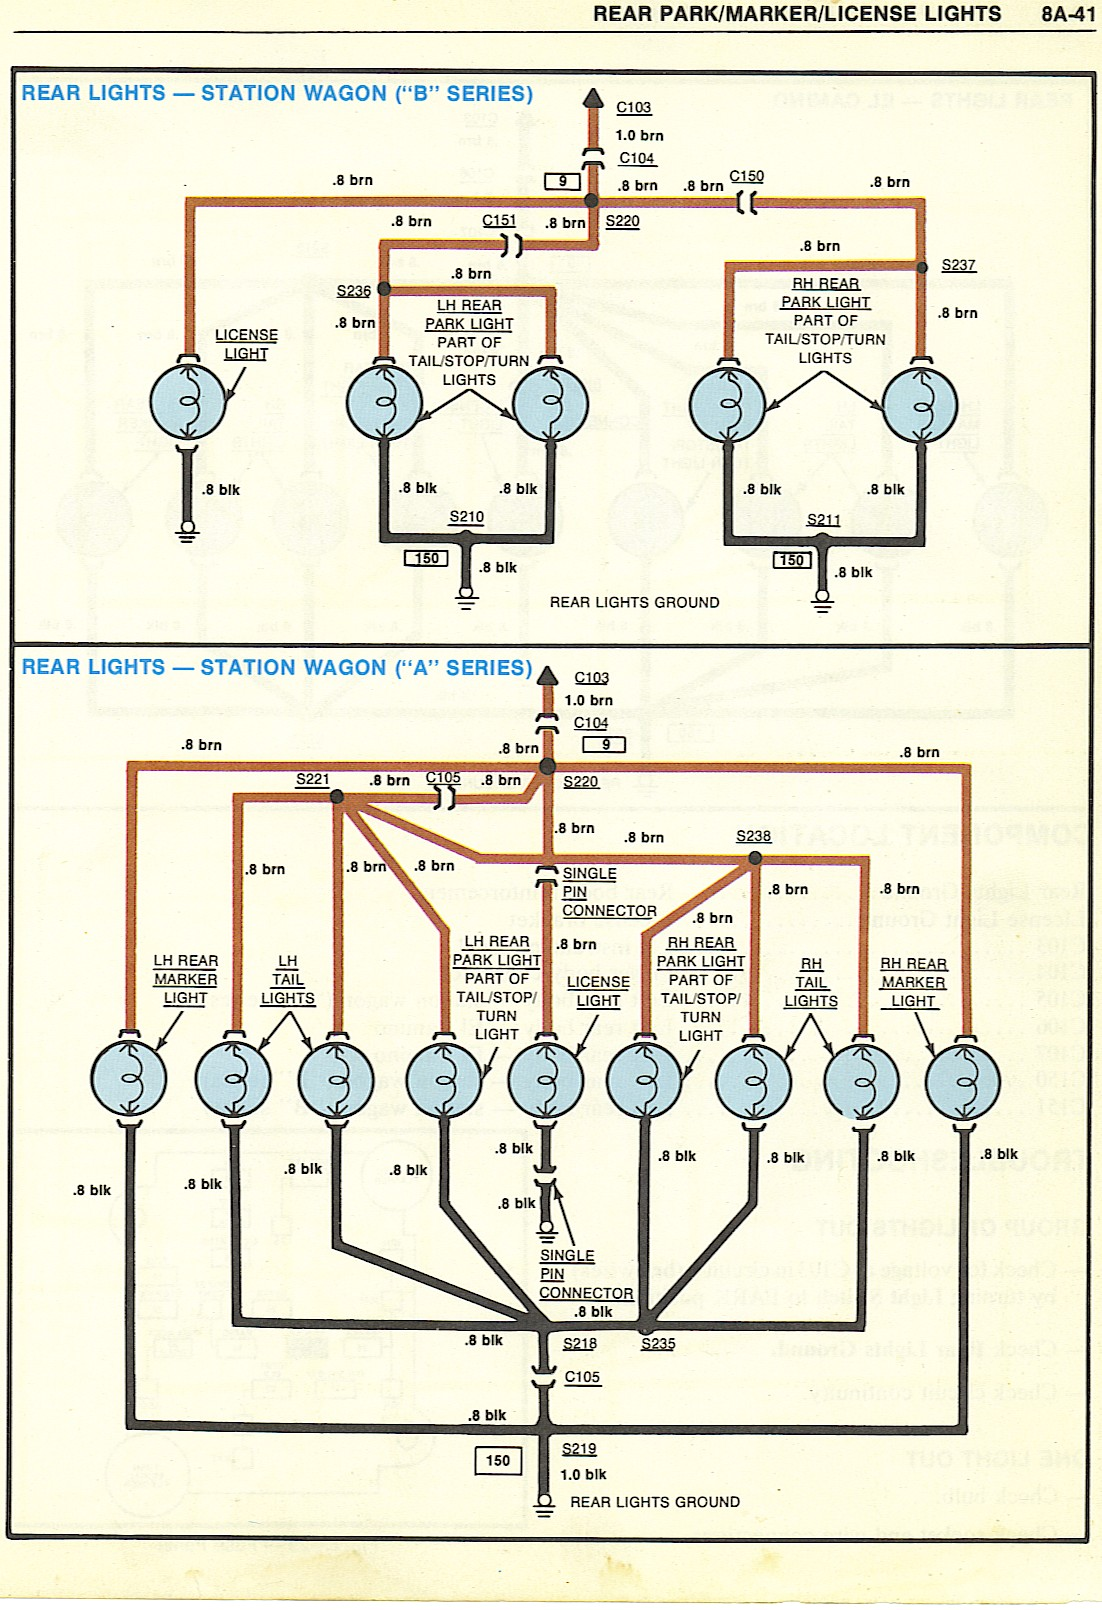 Fiat 500 D Electrical Wiring Diagrams likewise Honda Cg 125 Wiring as well 76796 further Wiring Diagram For Honeywell Thermostat Th3210d1004 likewise Wire Furnace Thermostat Wiring Diagram. on th3210d1004 wiring diagram